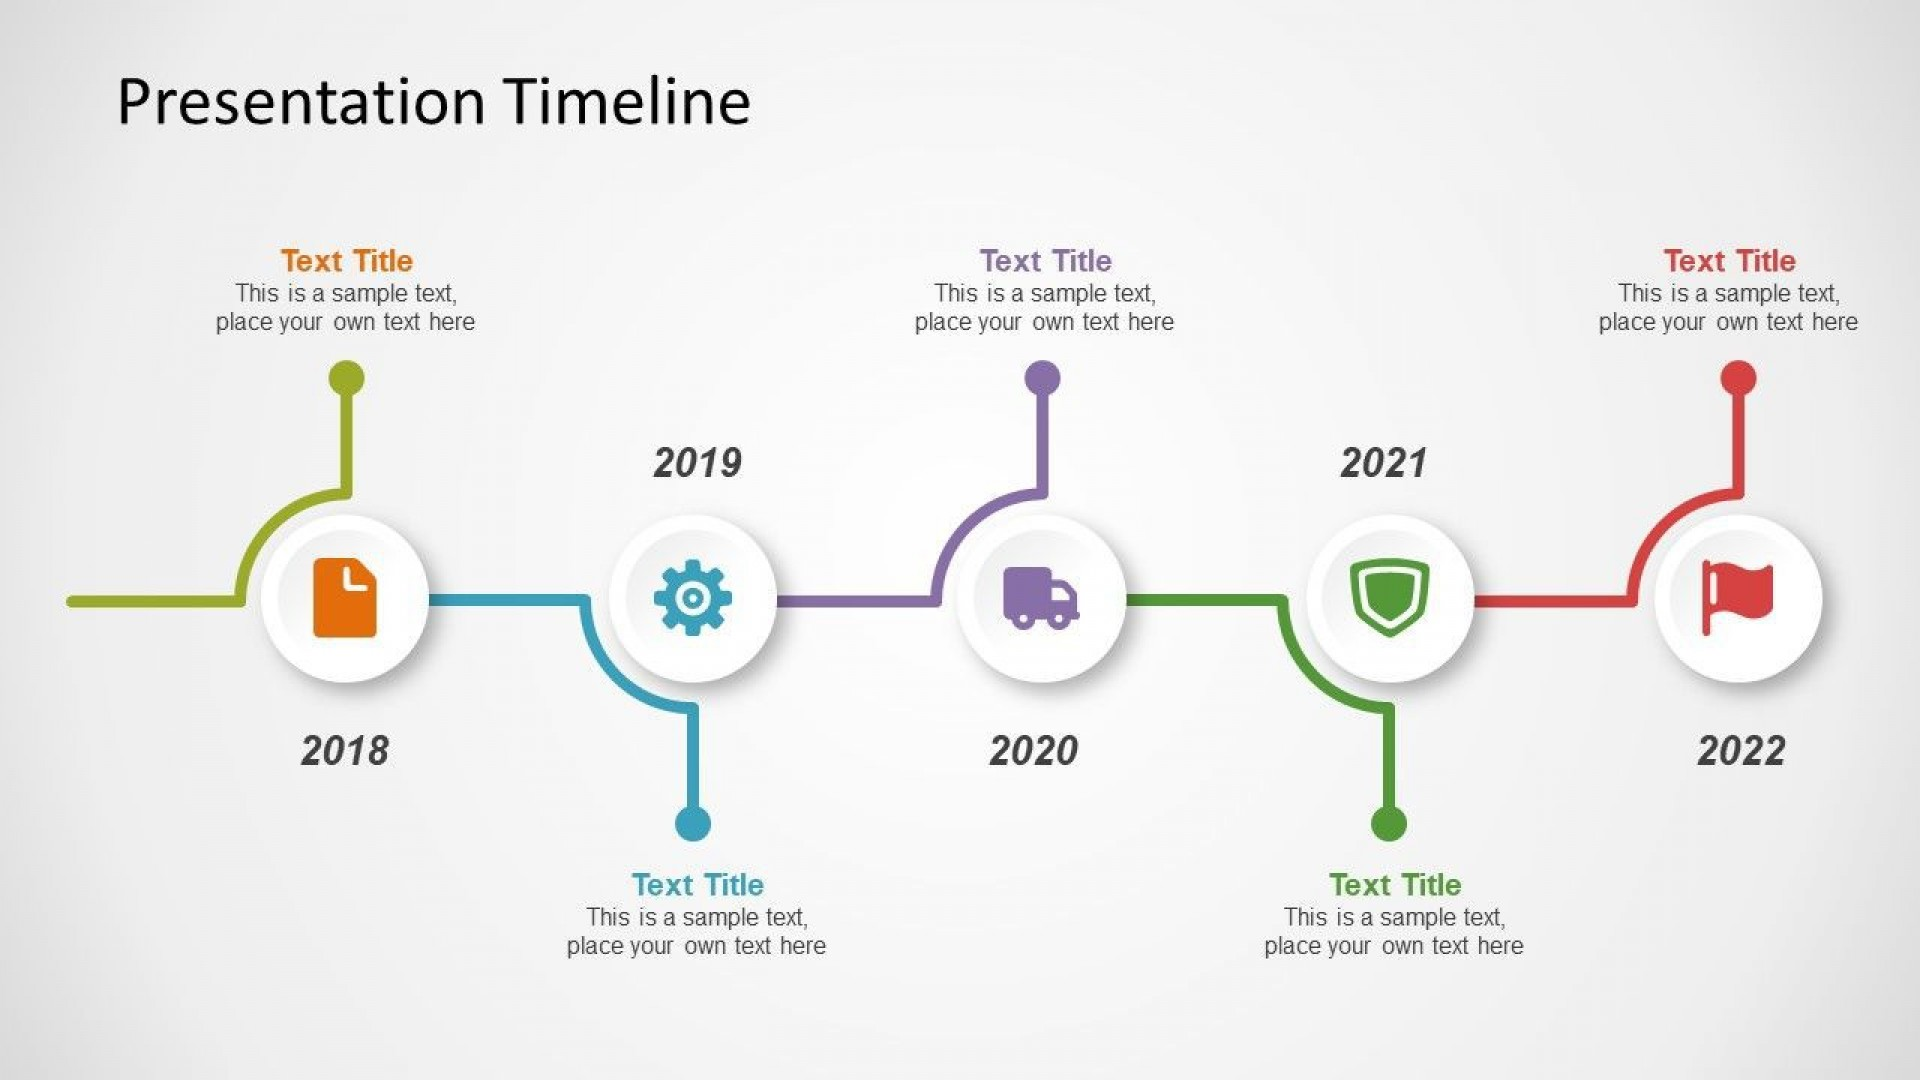 002 Beautiful Timeline Example Presentation Design  Project Slide Template1920